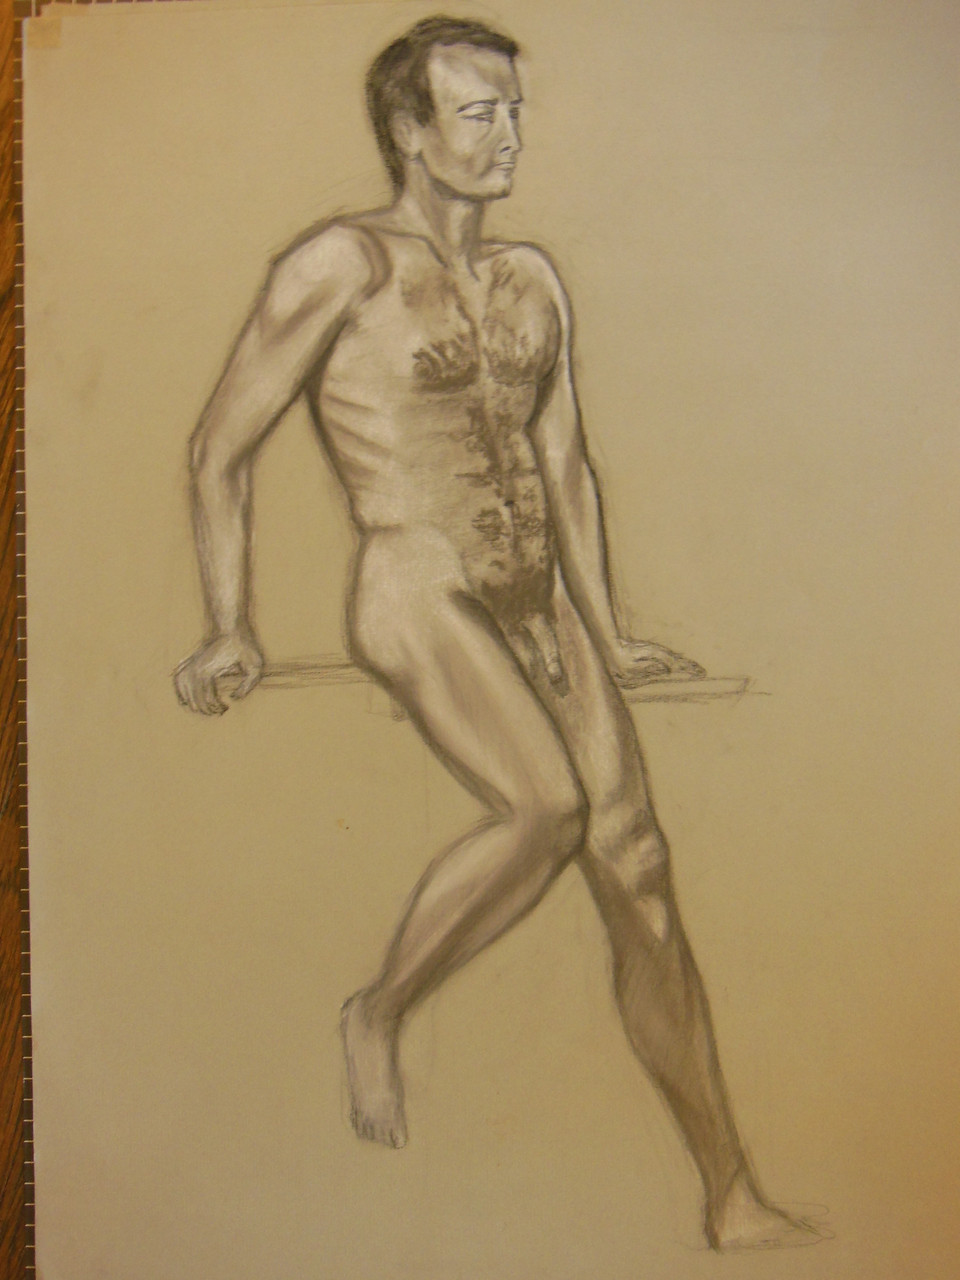 Nude Drawing: Charcoal & pastel on grey paper. 18